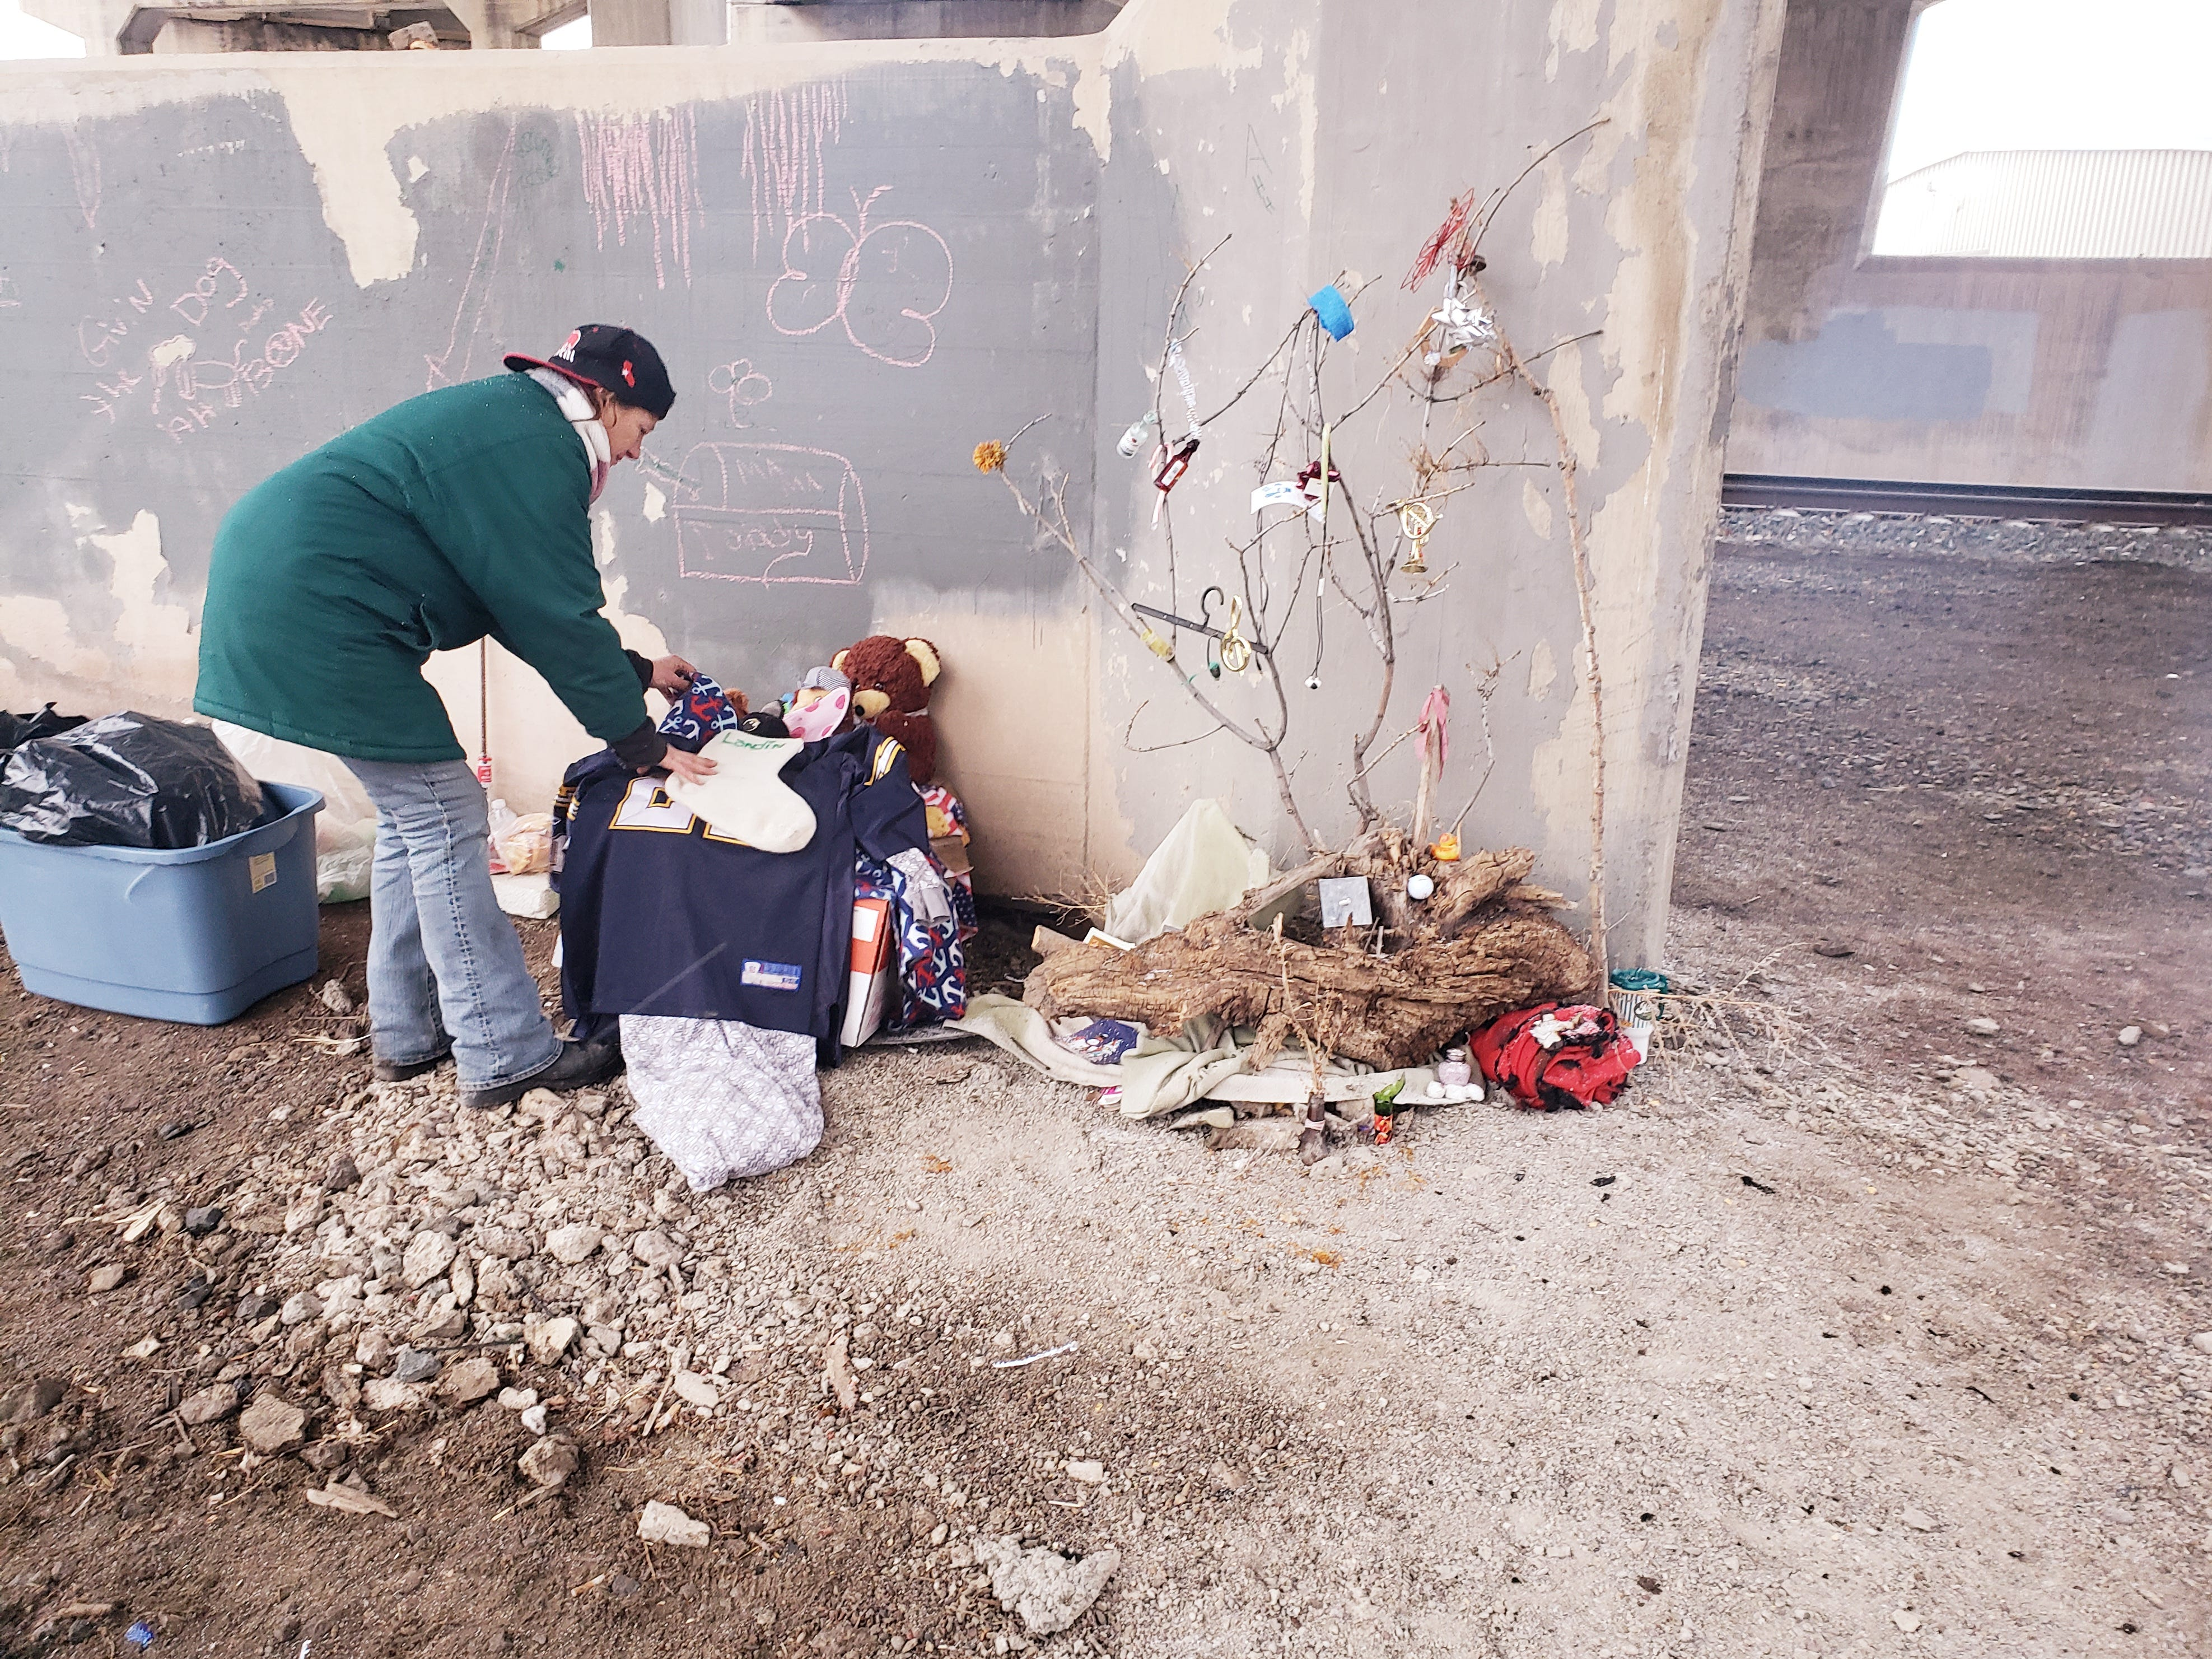 """Barbara Snider arranges decorations in her """"home"""" under the Warden Street Bridge a month or so before she died. The decorations included a Christmas stocking and a Christmas tree she fashioned out of a tree branch and items she collected including ear buds, a hangar and a tiny whisky bottle."""